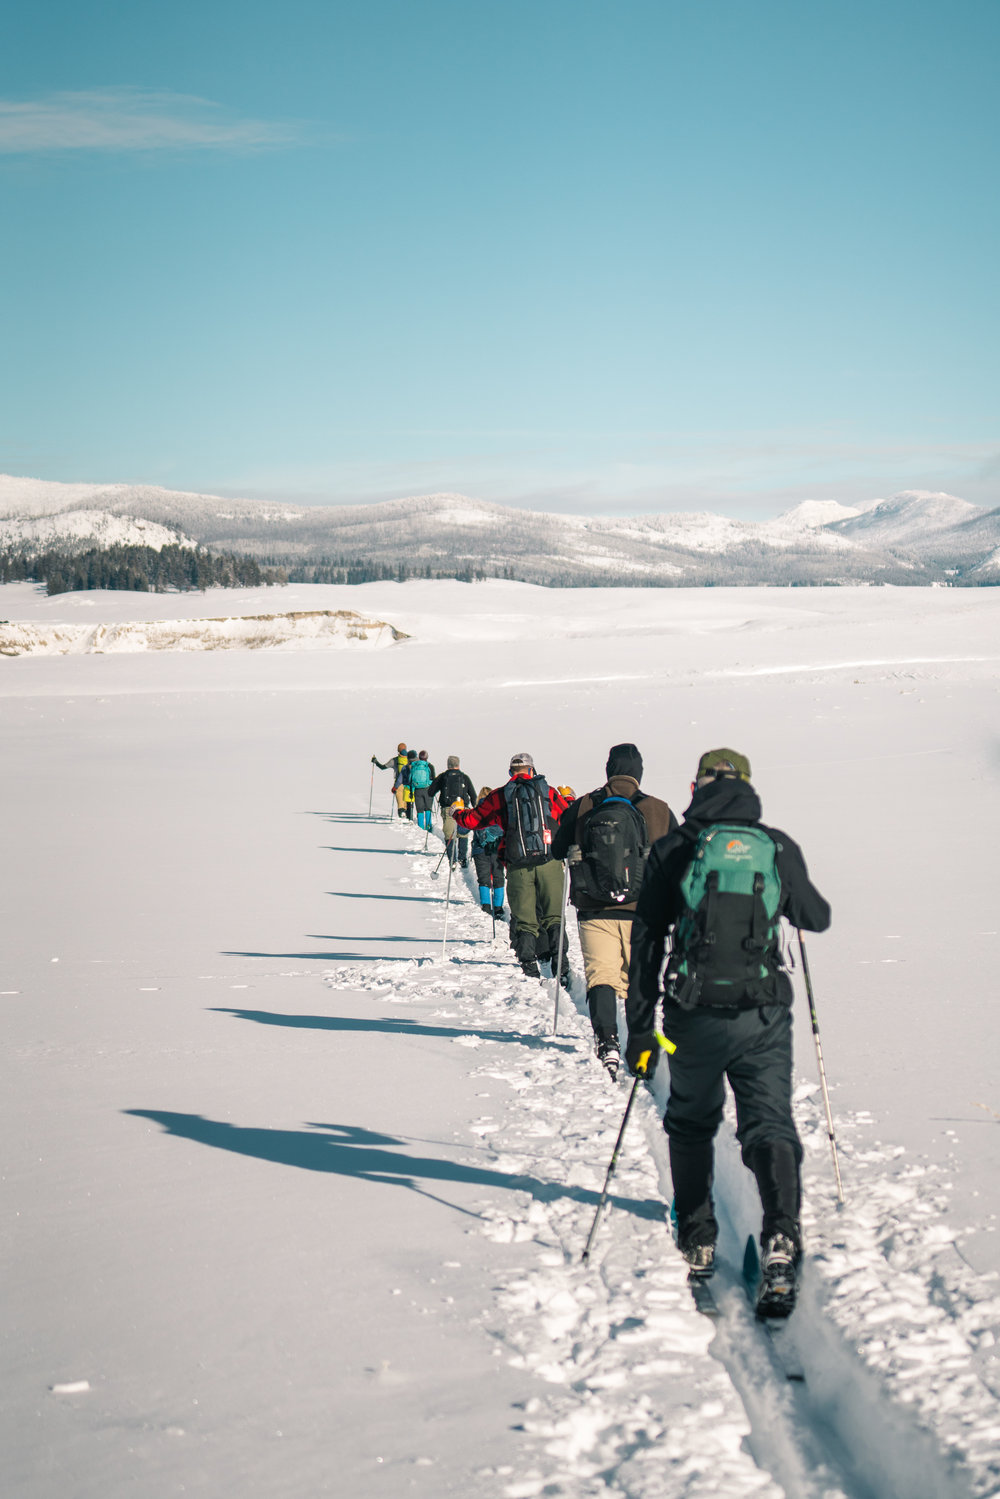 Cross-country skiing through the Pelican Valley in Yellowstone National Park.